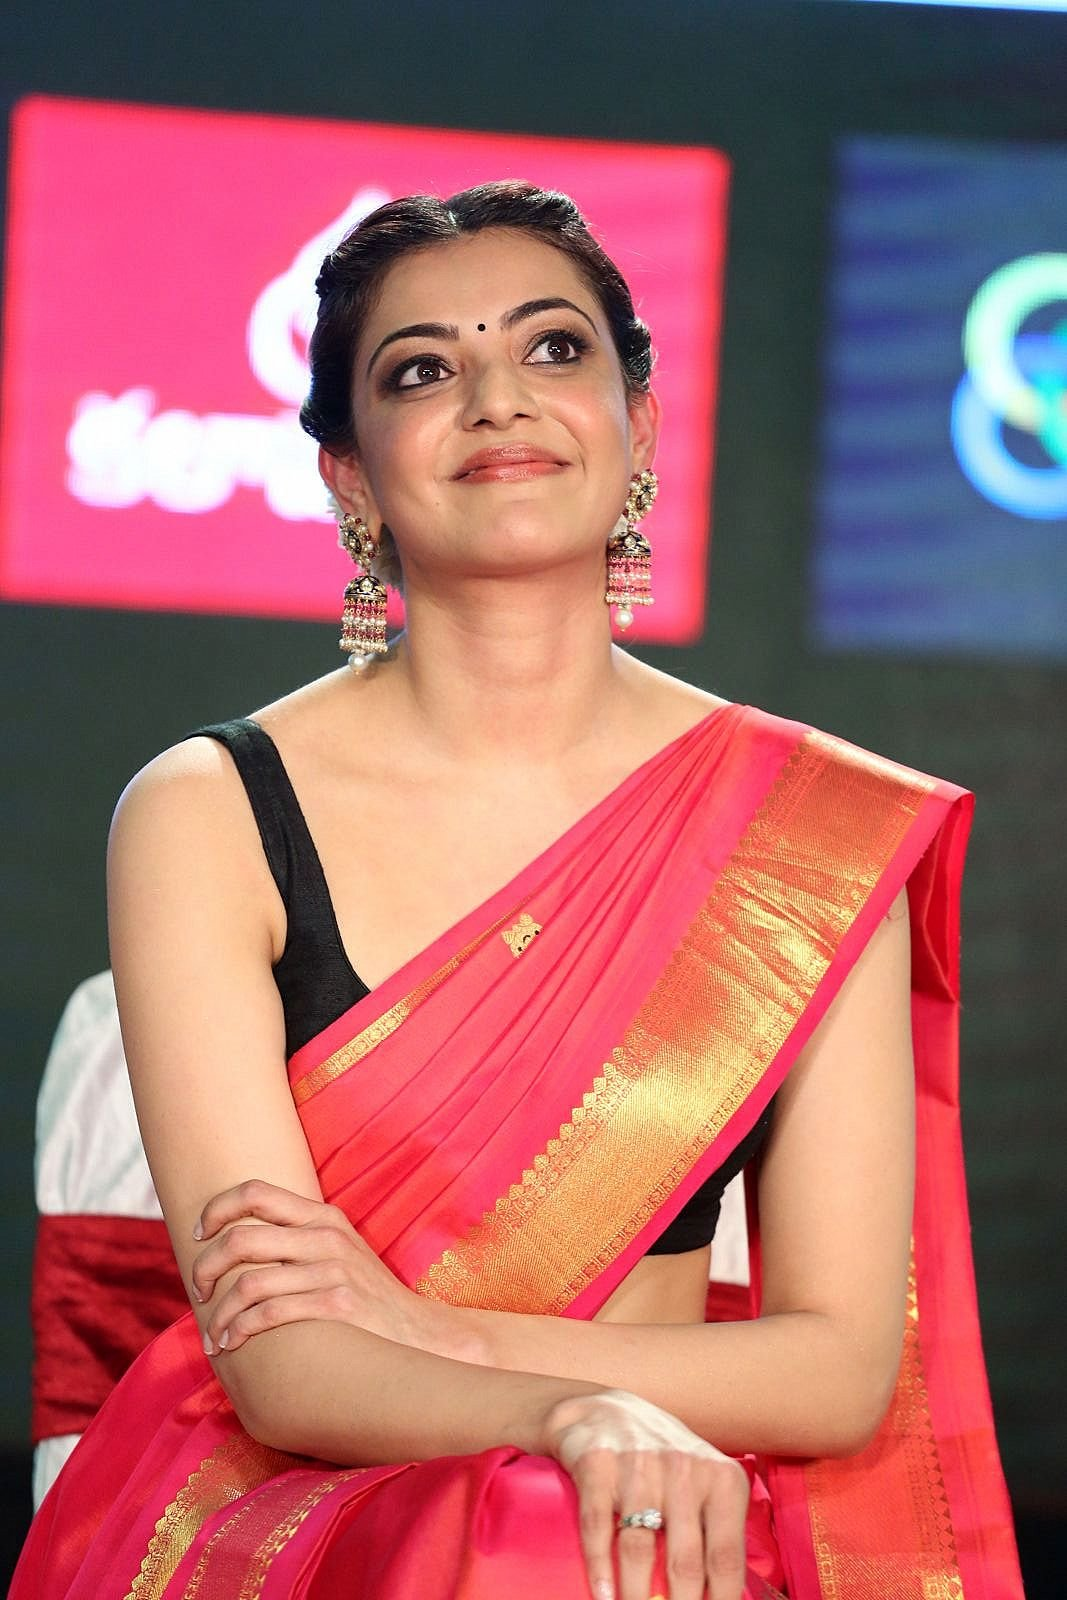 Sexy Kajal Agarwal Pictures in Deep Cut Blouse - Sexy Actress Pictures | Hot Actress Pictures